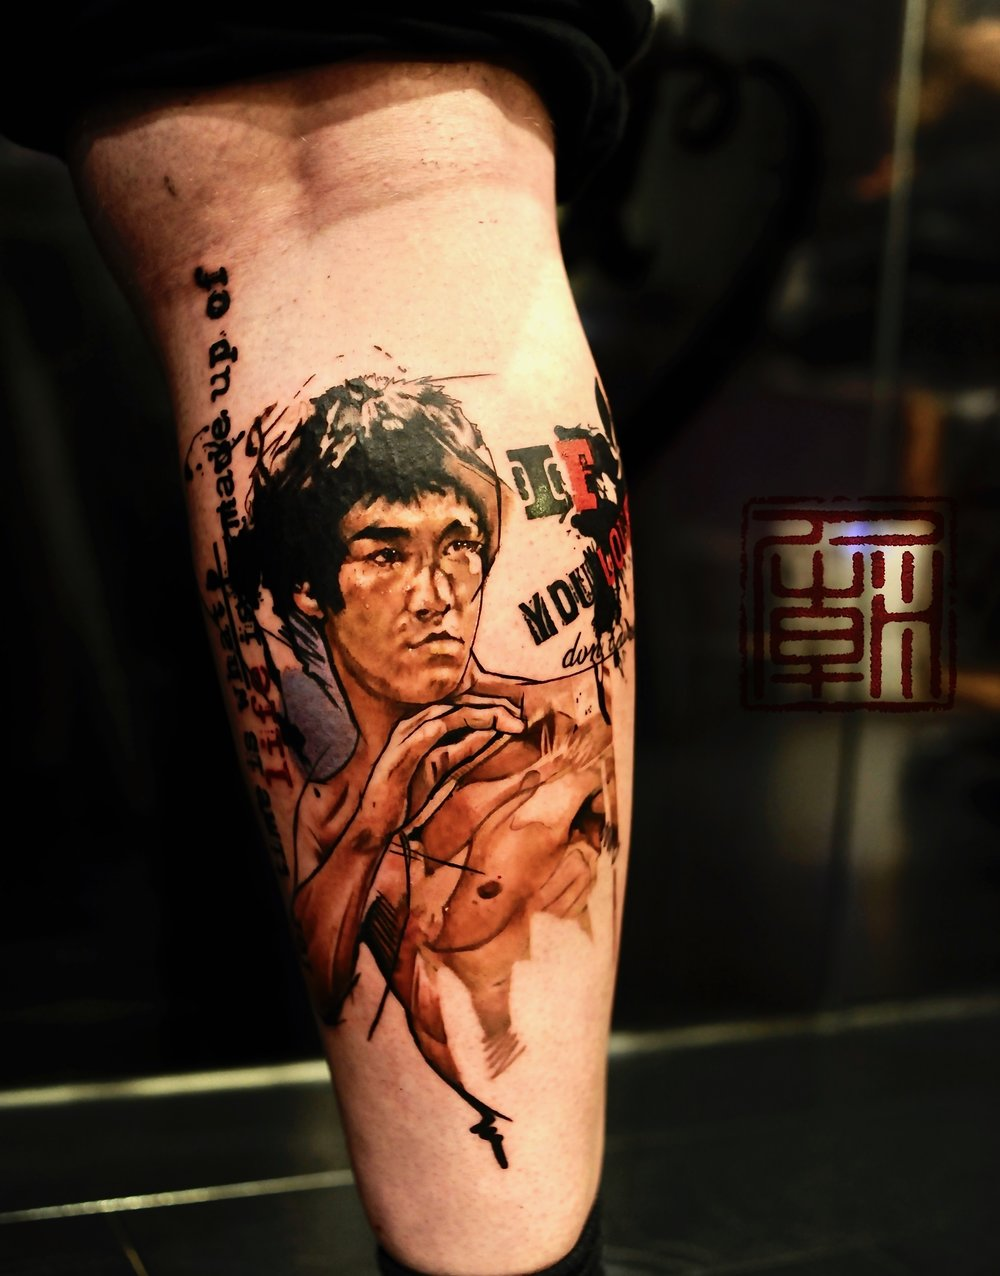 Anttis Bruce Lee Dedication Jamie Wang Tattoo Temple Hong Kong.jpg